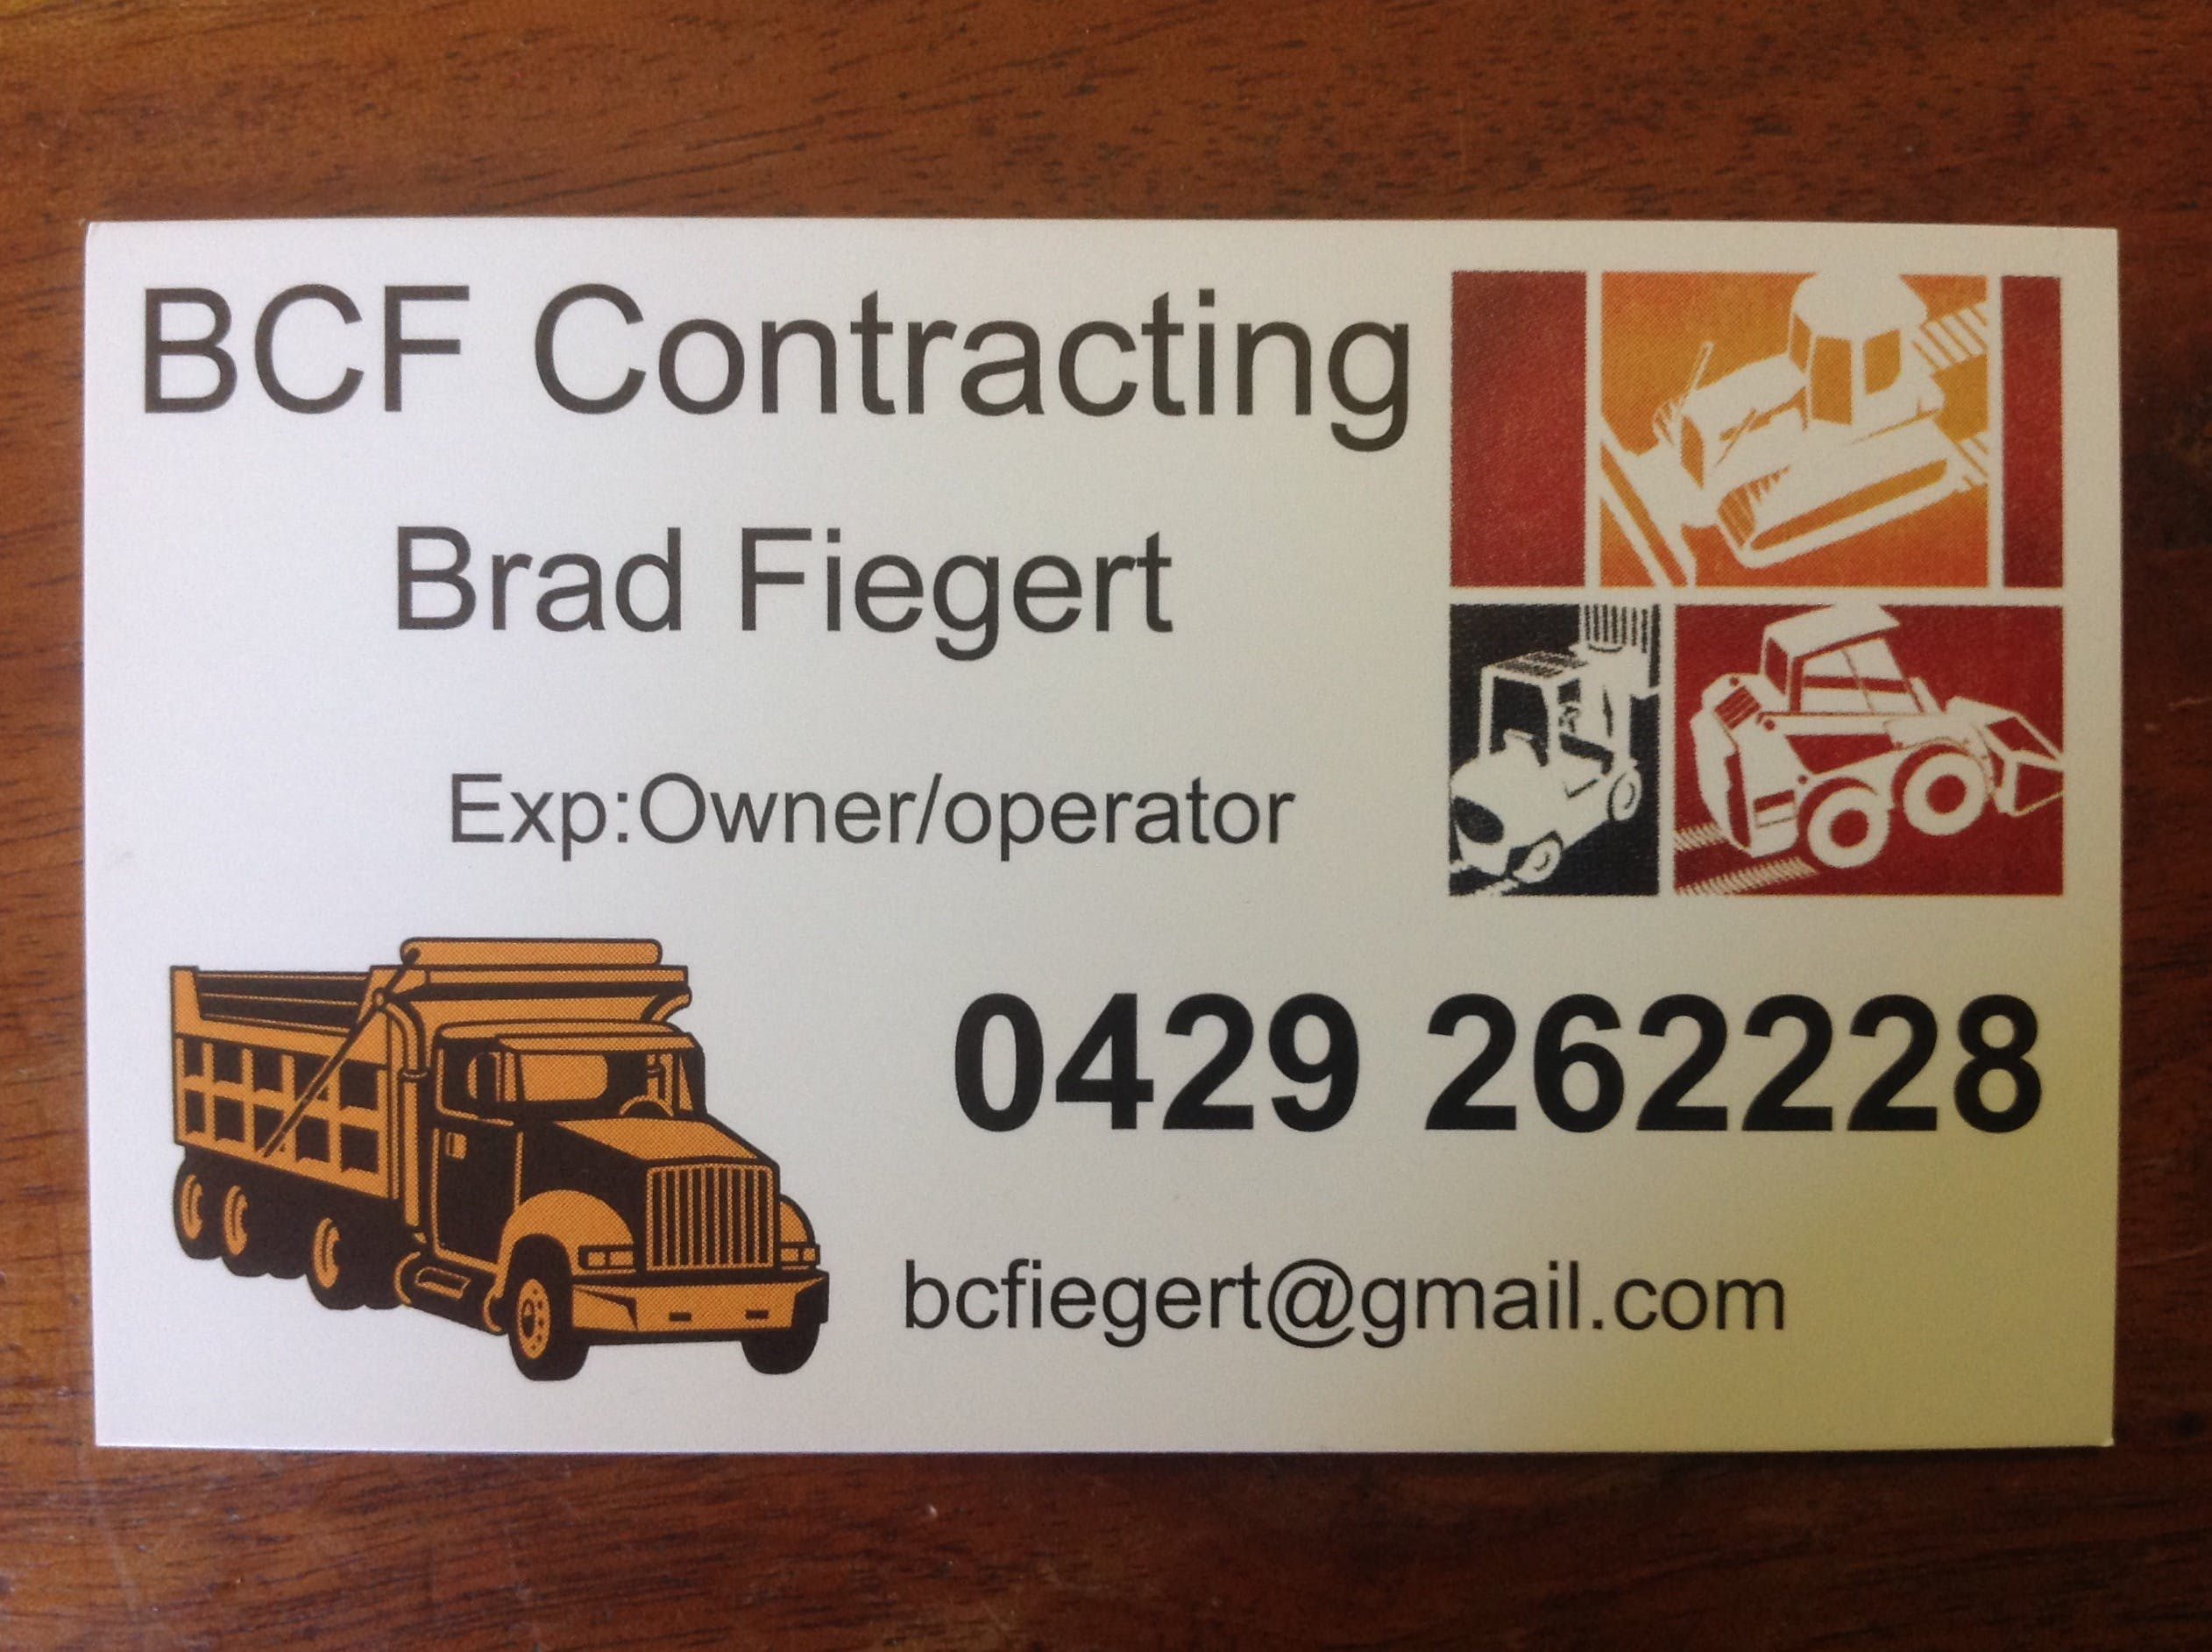 BCF Contracting